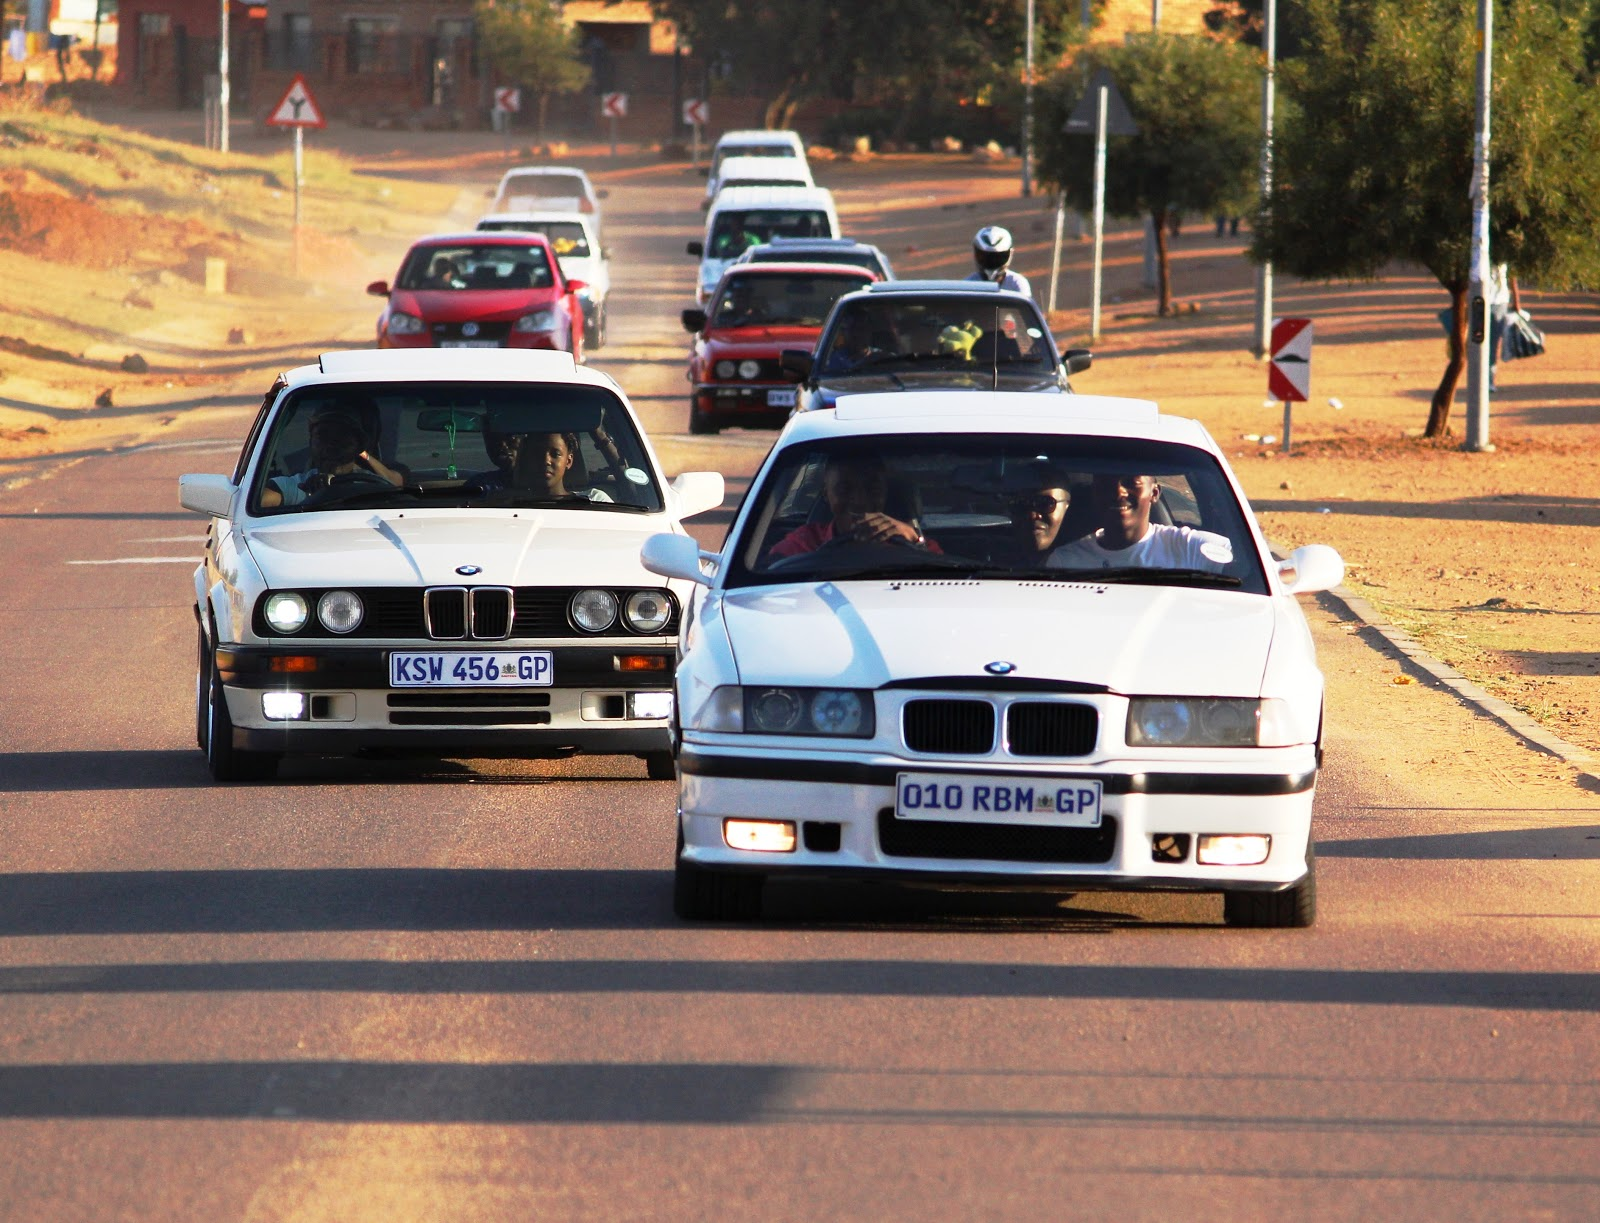 Spin Kingz Descend Upon Township Streets